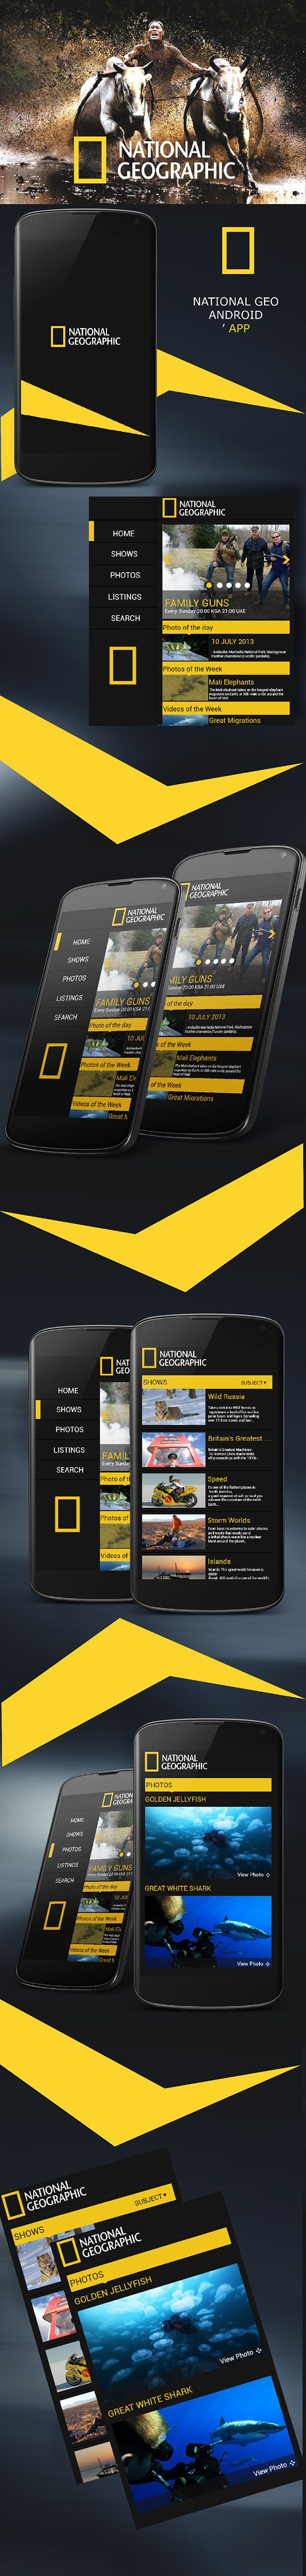 National Geographic Android App on Behance #mobile #interface #ui